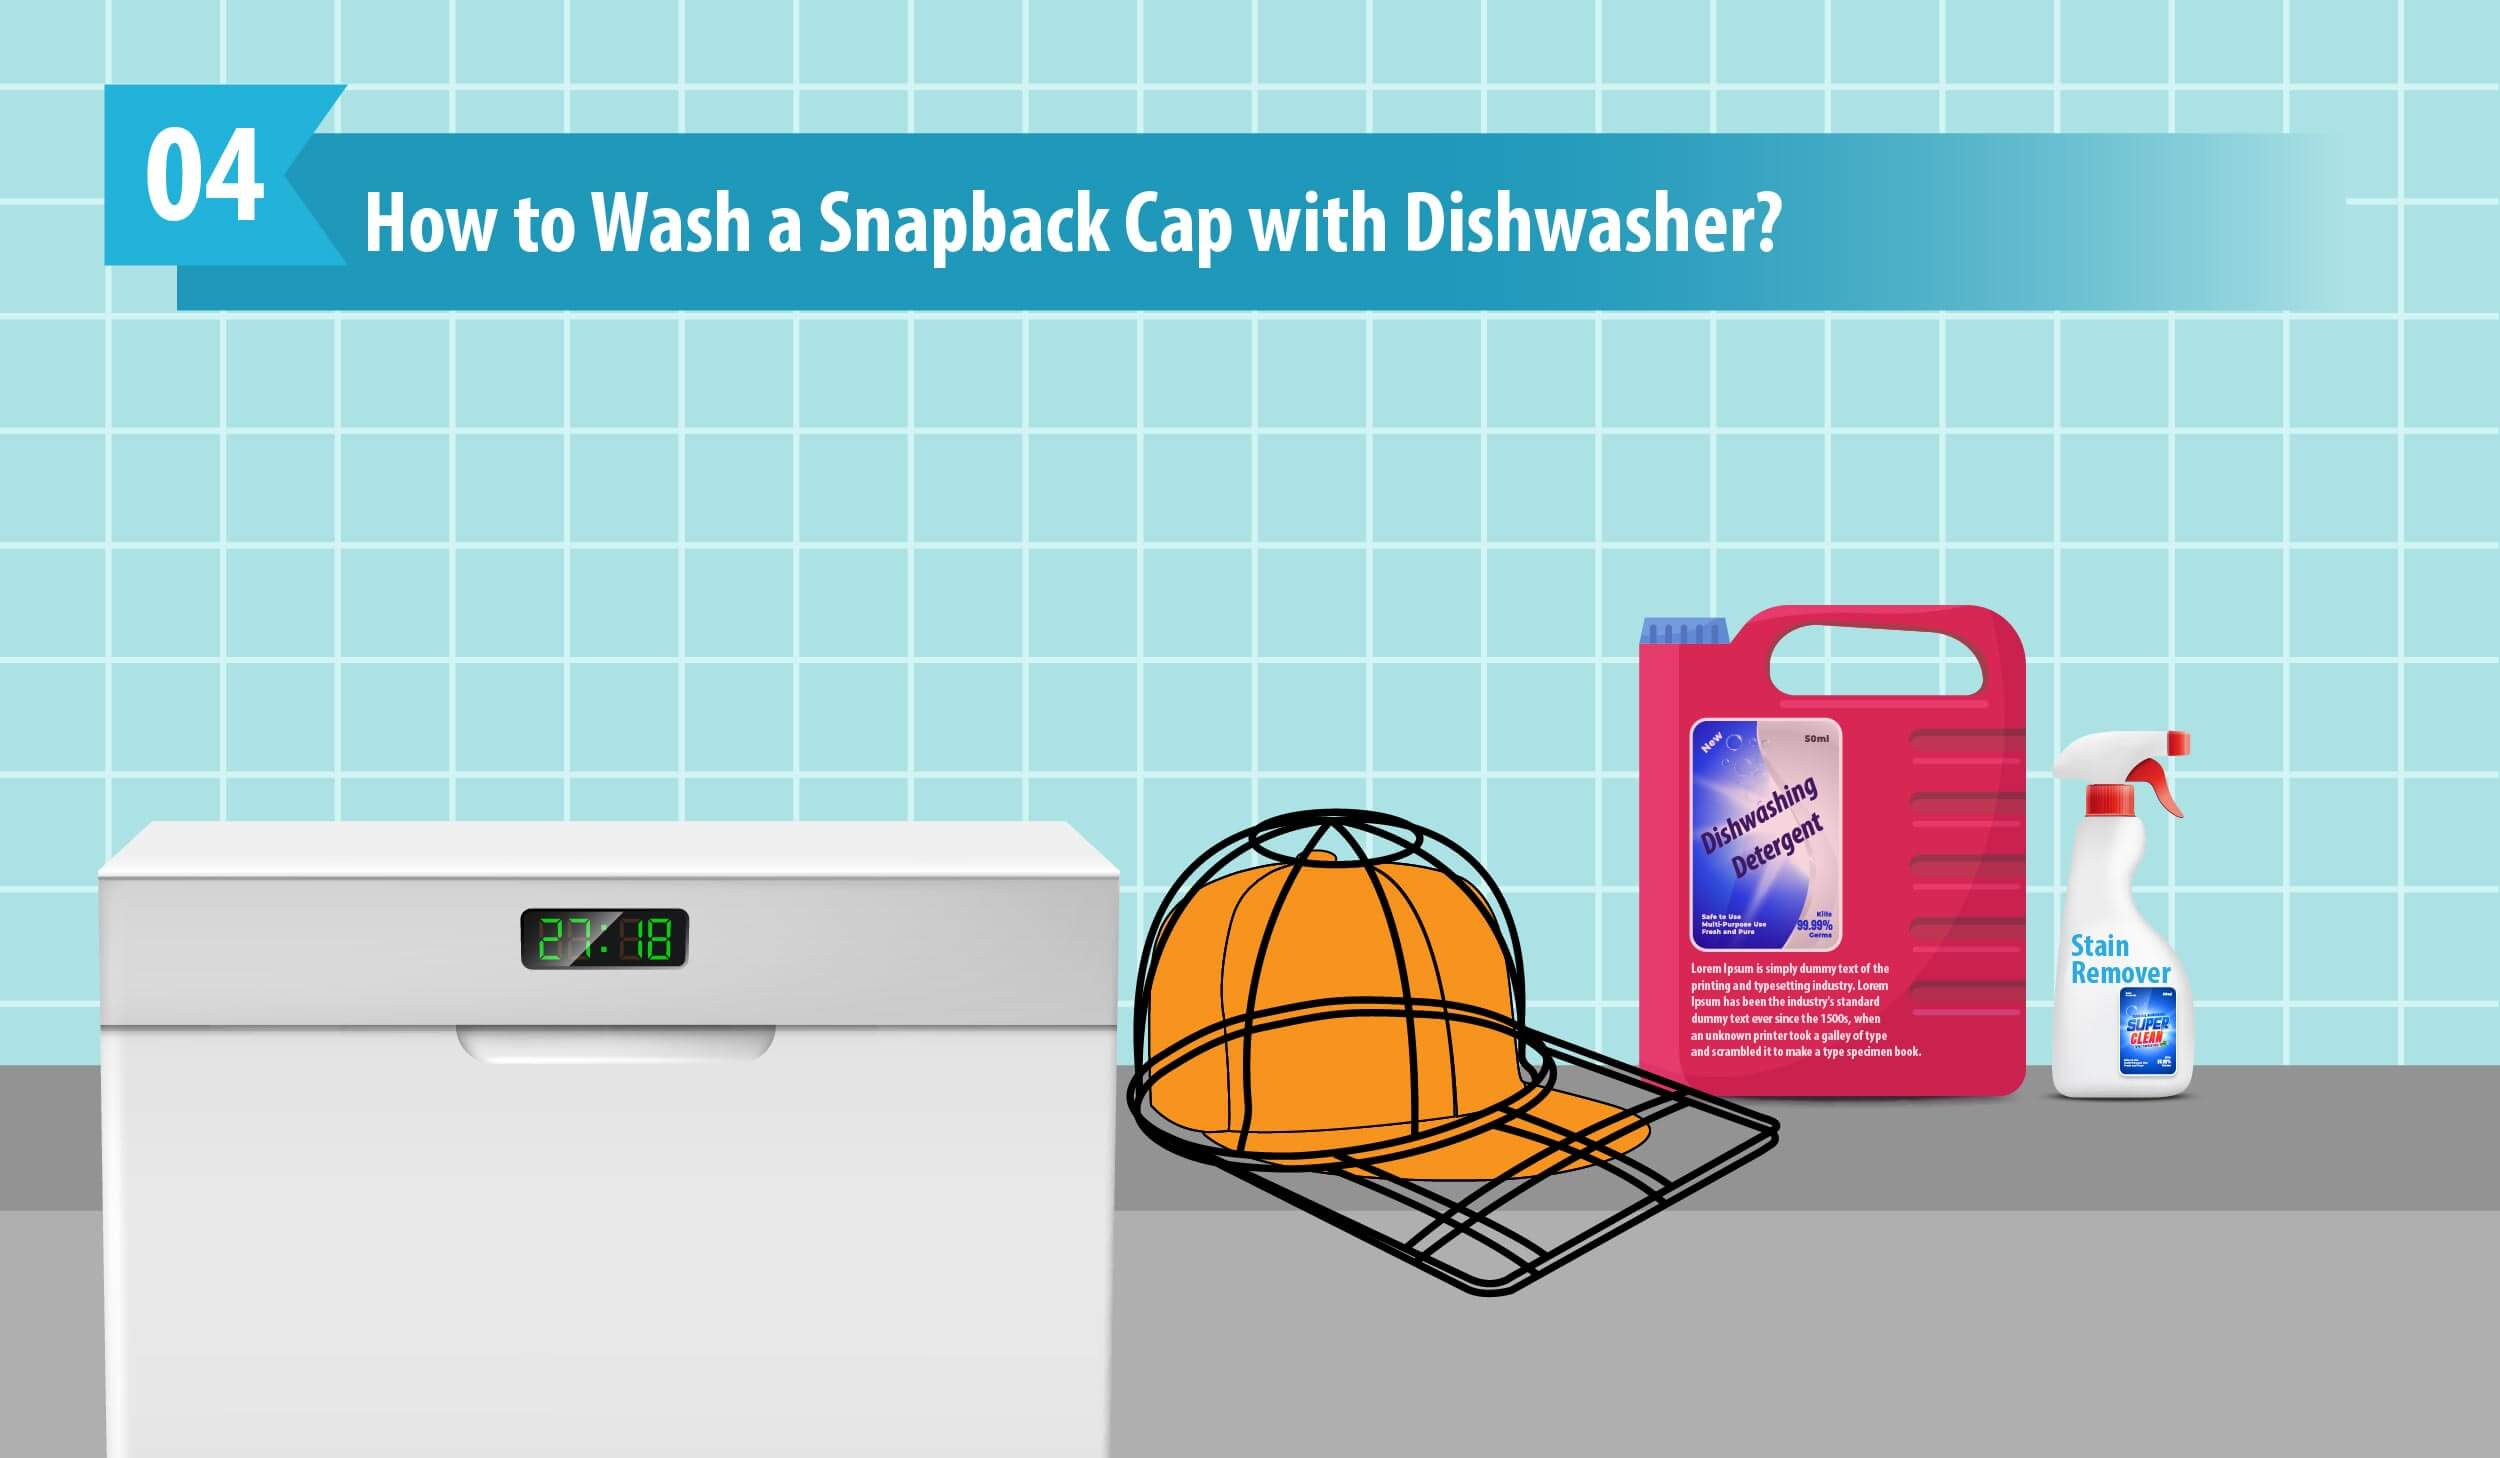 How to Wash a Snapback Cap with Dishwasher